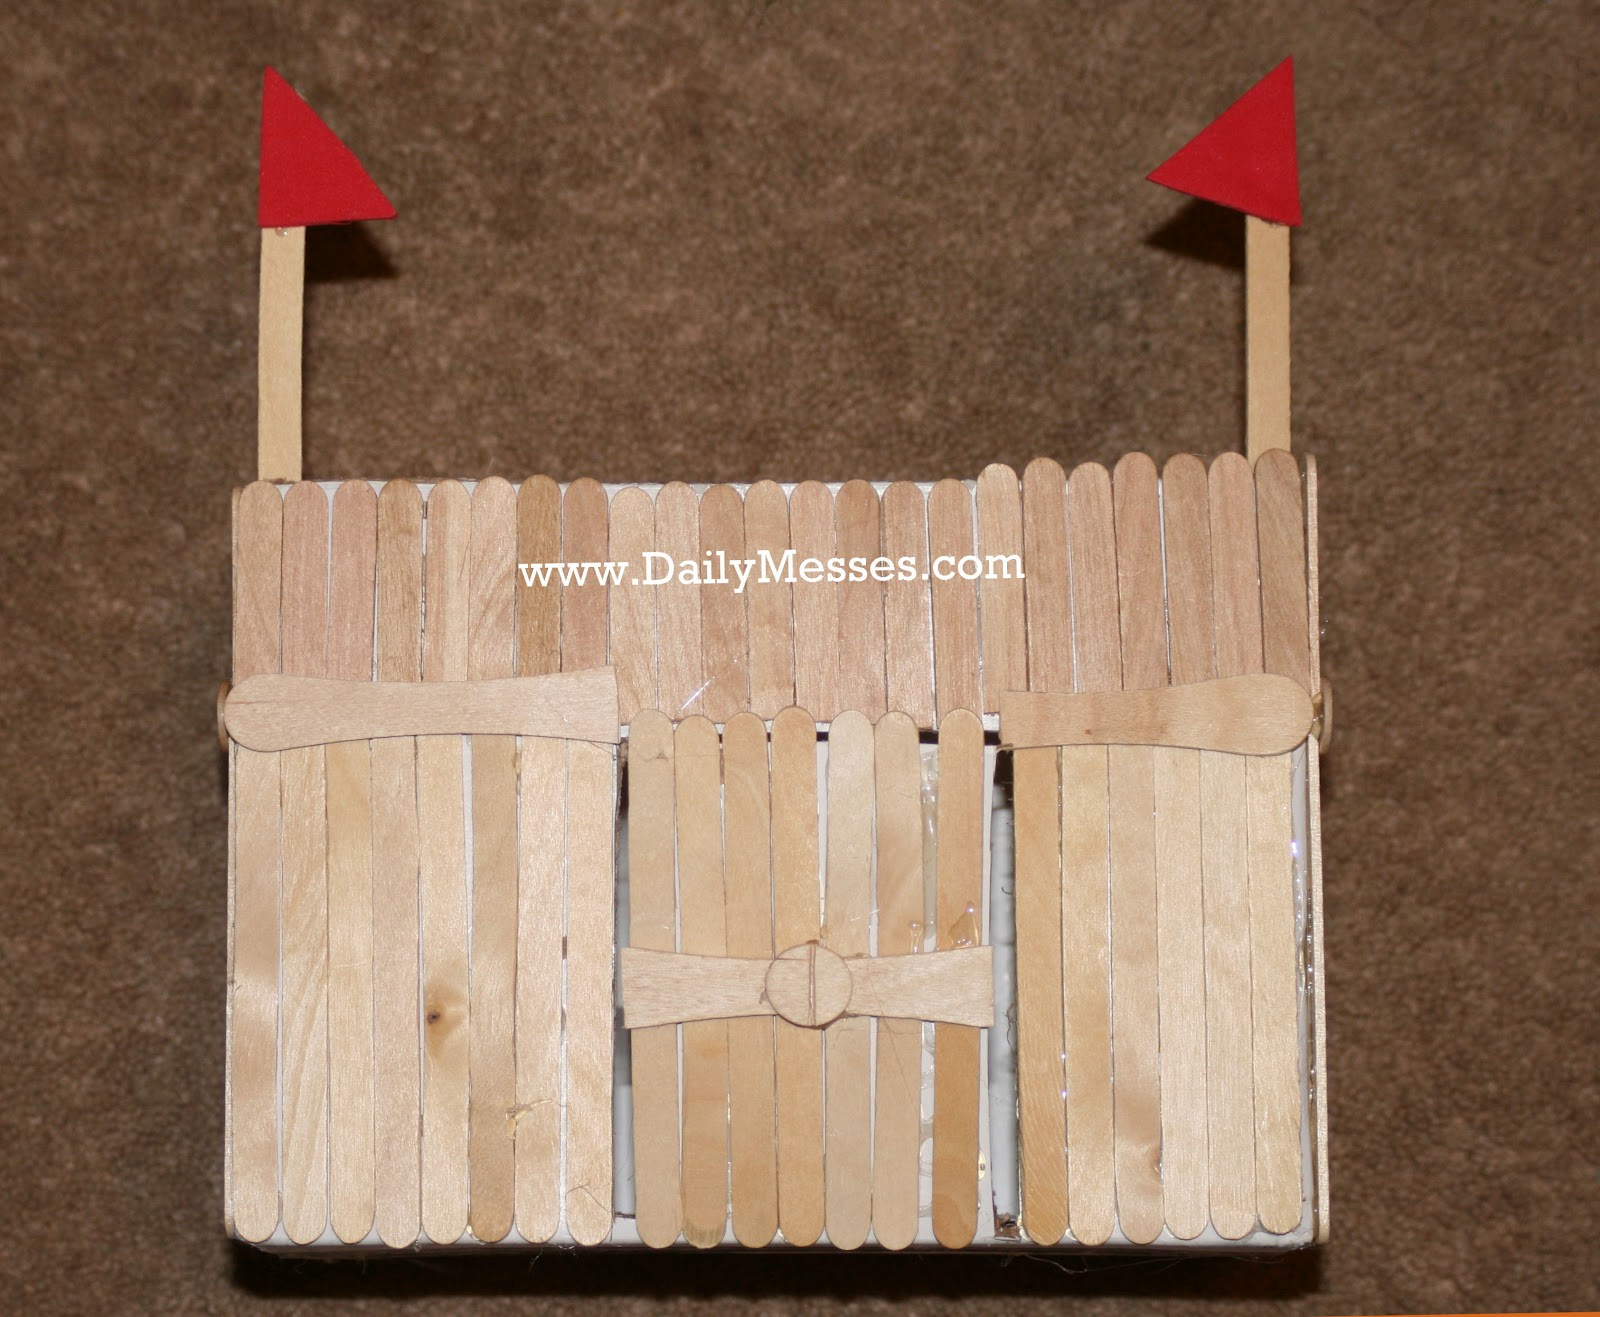 Daily Messes Fun With Popsicle Sticks Homemade Fort And: what to make out of popsicle sticks